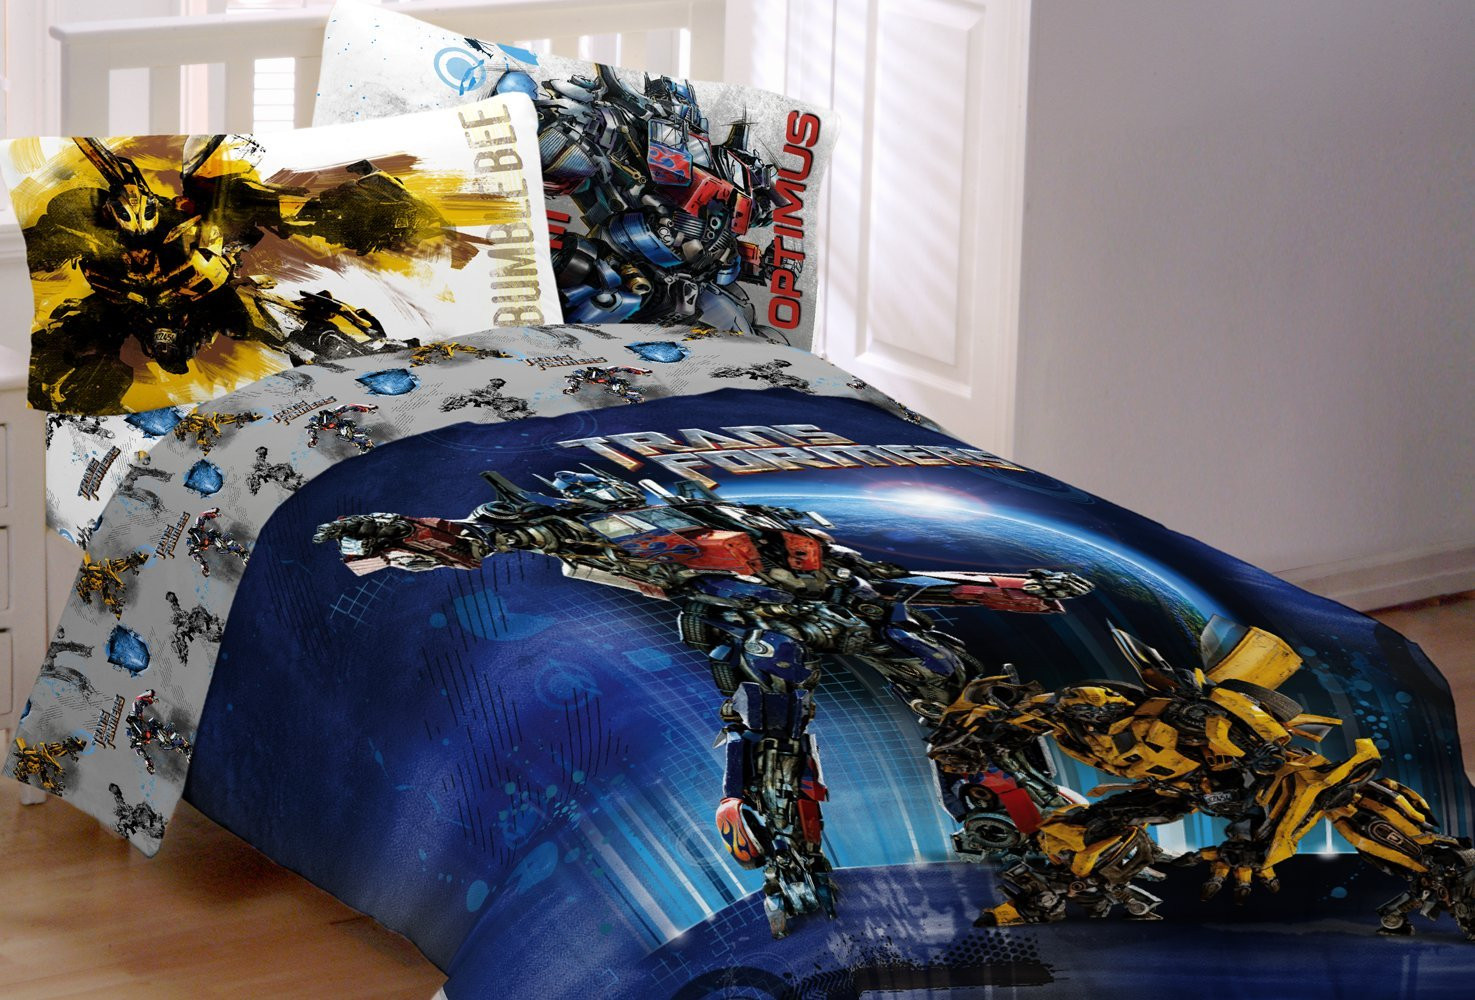 Best ideas about Transformers Bedroom Sets . Save or Pin Transformers boys bedding sets Now.